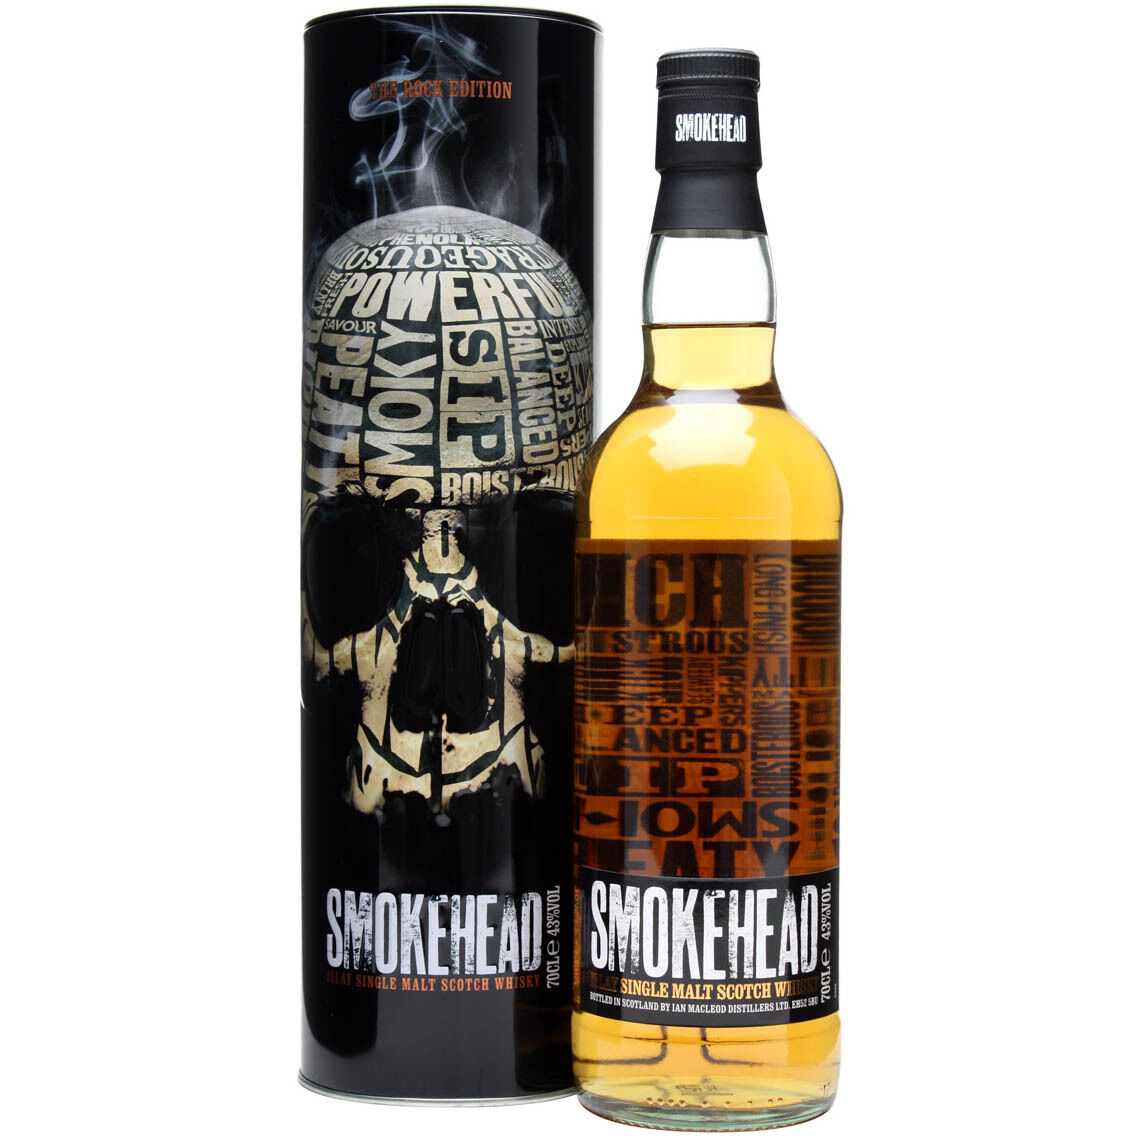 Smokehead Scotch Whisky 700mL